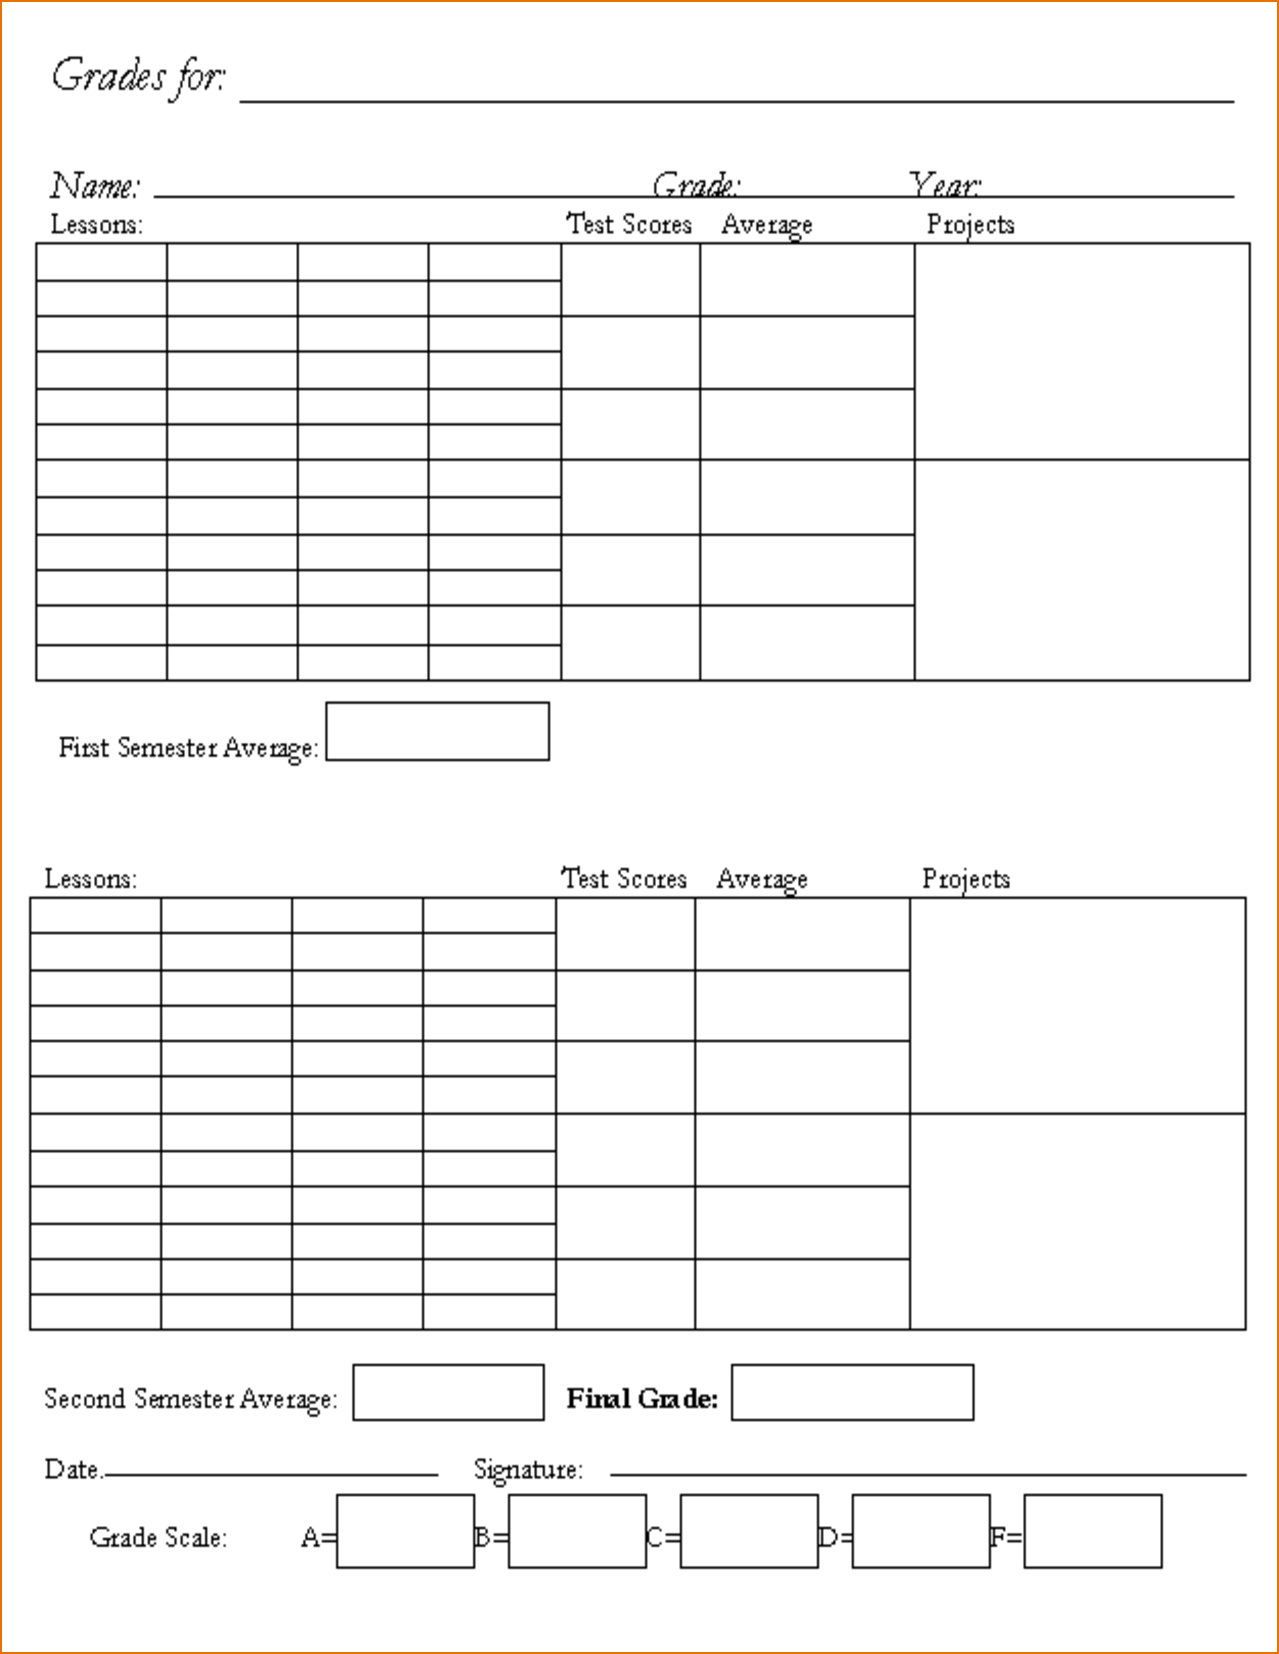 Name Card Template For Kindergarten Throughout Boyfriend With Boyfriend Report Card Template